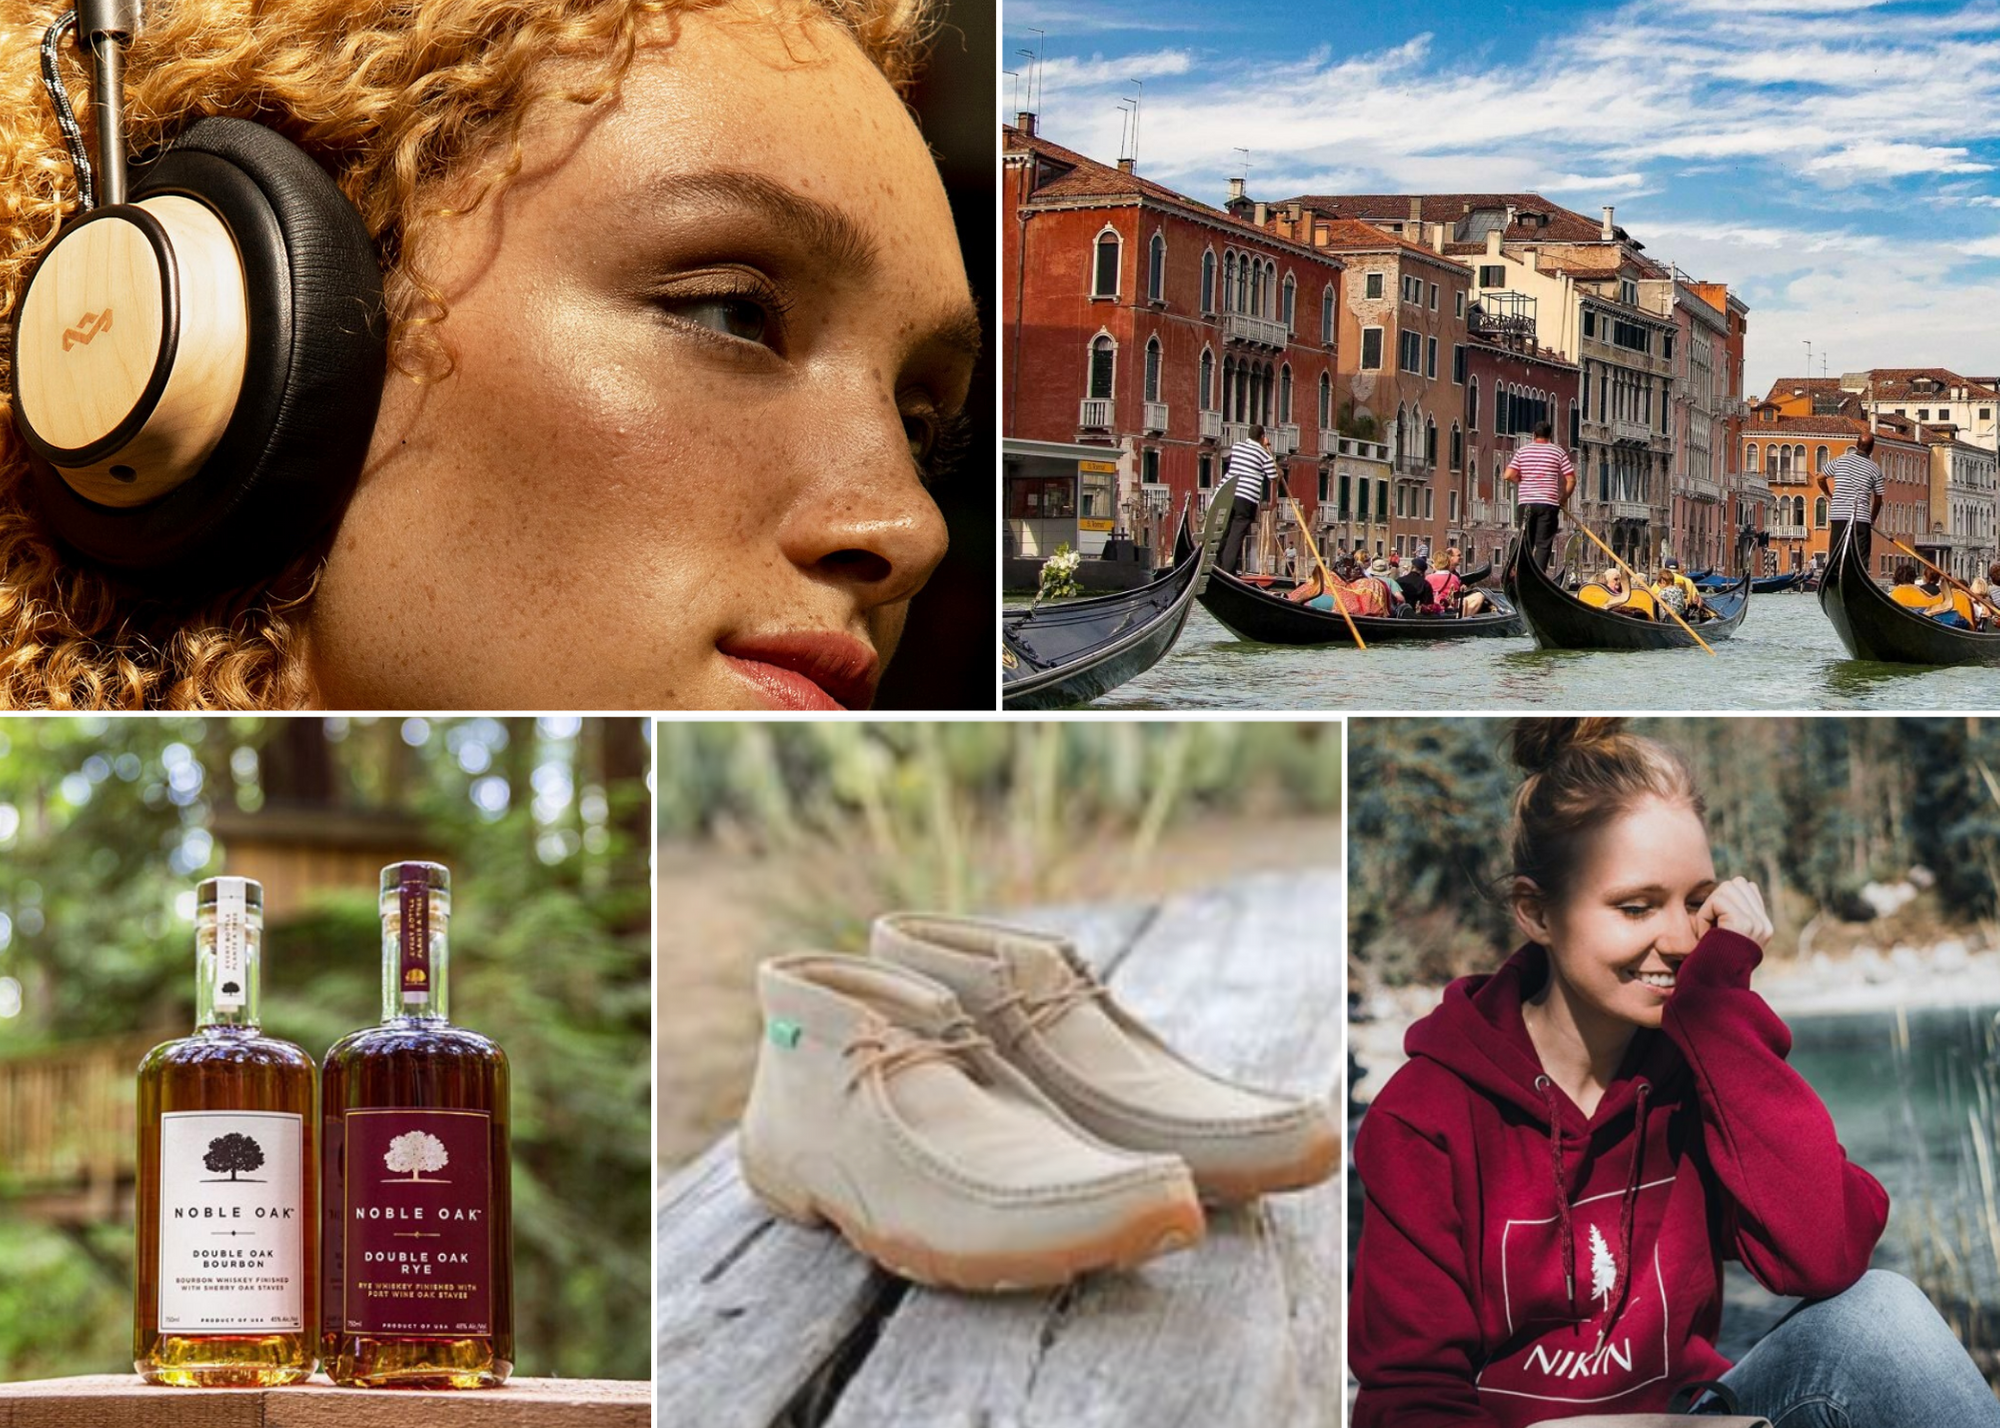 Collage of woman wearing headphones, bottles of bourbon, multi colored shoes, woman wearing red sweatshirt in nature, and gondolas in italy